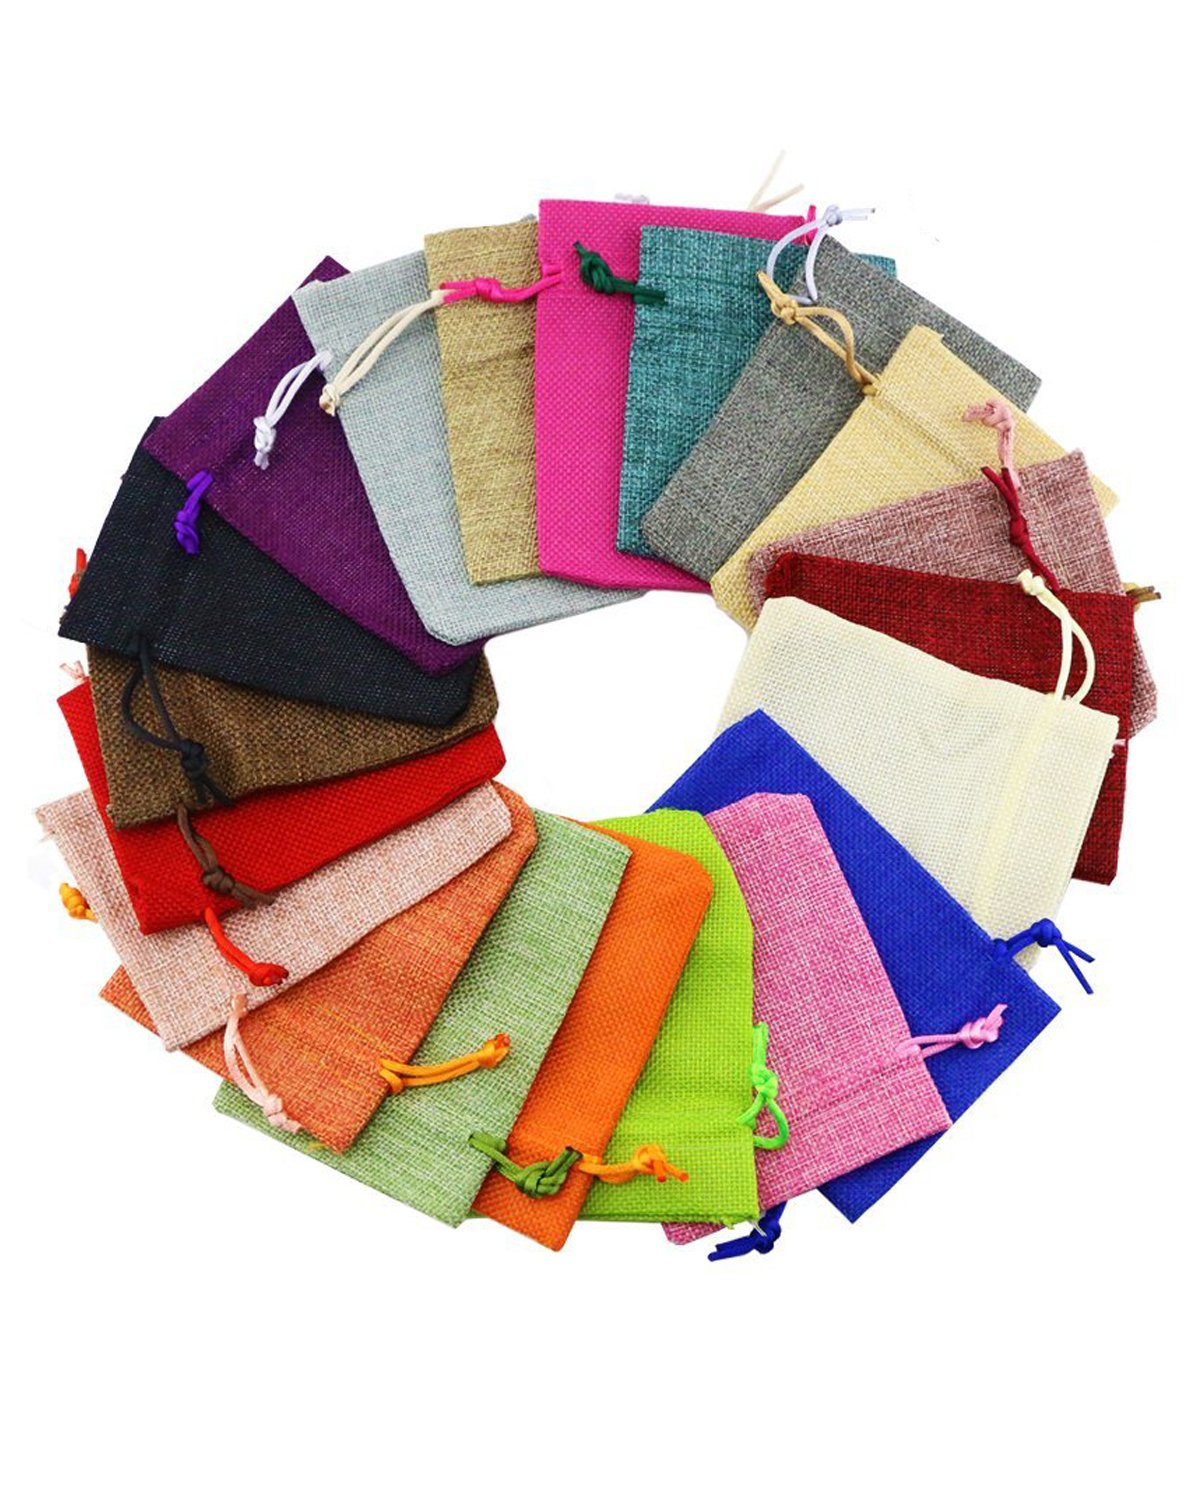 Fyess 20 PCS Christmas Party Bags Burlap Bags with Drawstring Gift Bags for Wedding Party,Arts & Crafts Projects, Presents, Snacks & Jewelry,Christmas Natural Muslin Drawstring Bags 100% Cotton Wove